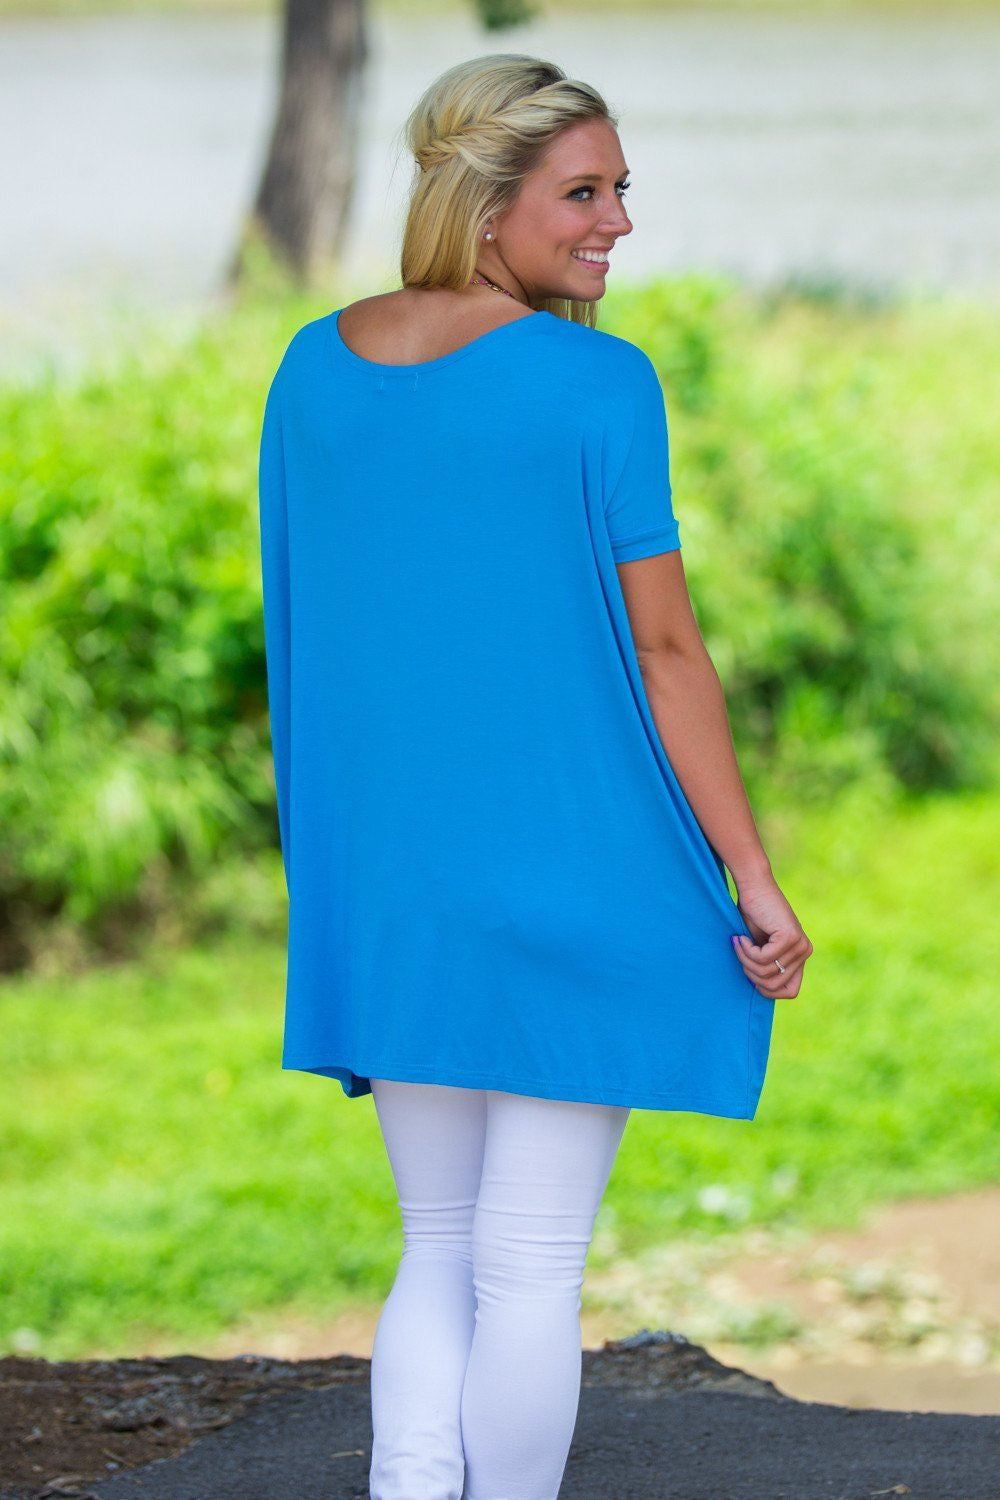 Short Sleeve Piko Tunic - Dazzling Blue - Piko Clothing - 2